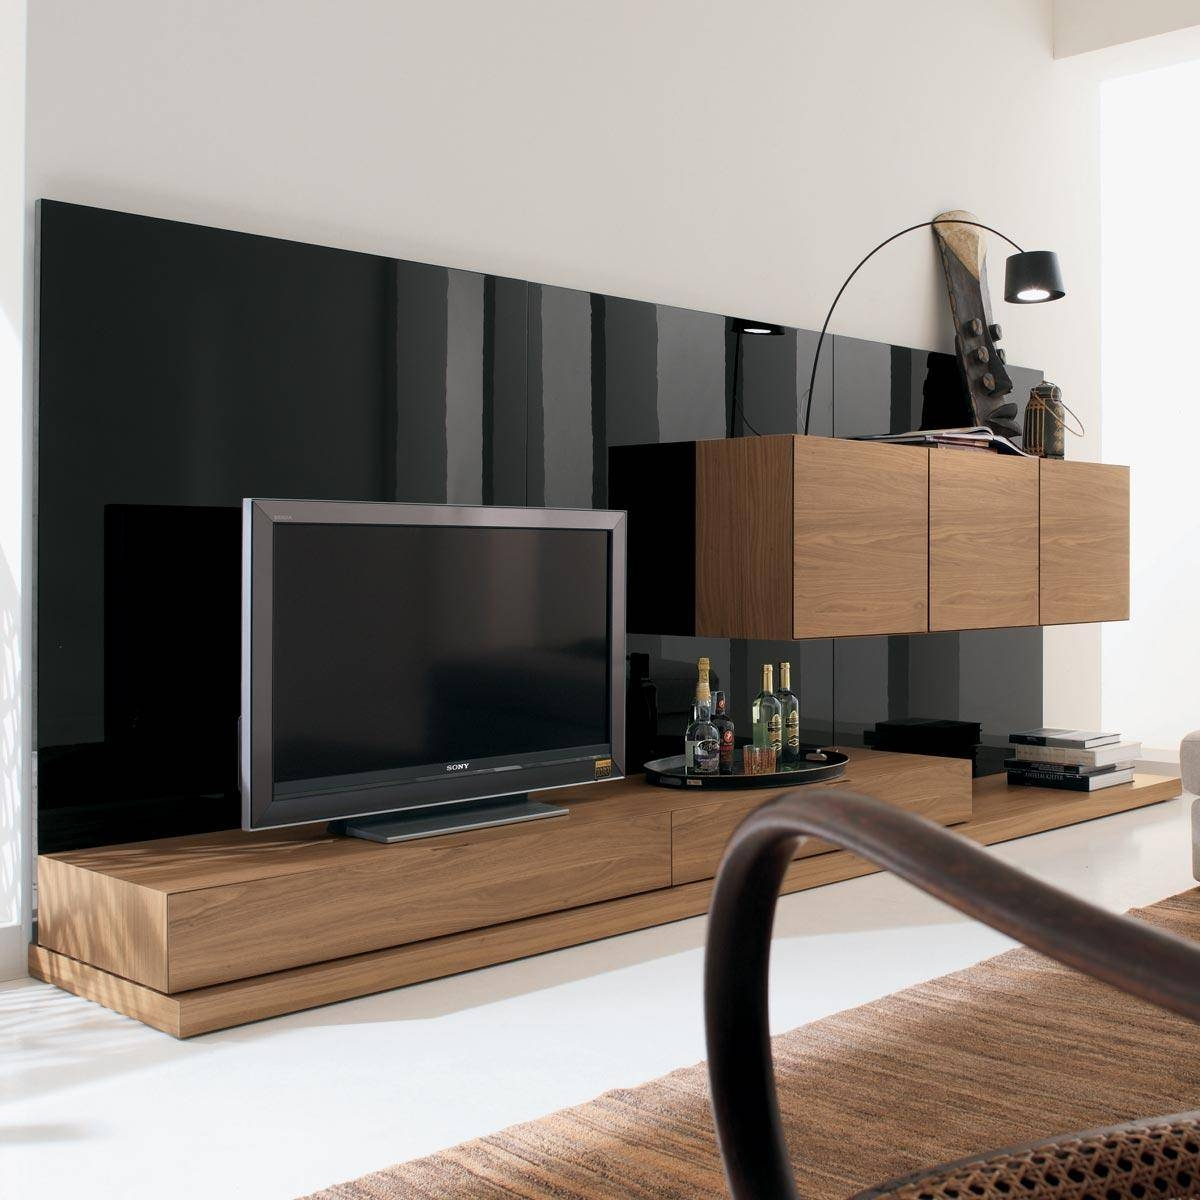 Solid Wood Tv Stand Also Long Tv Stand And Black Wall Living Room Pertaining To Contemporary Tv Cabinets (View 7 of 15)